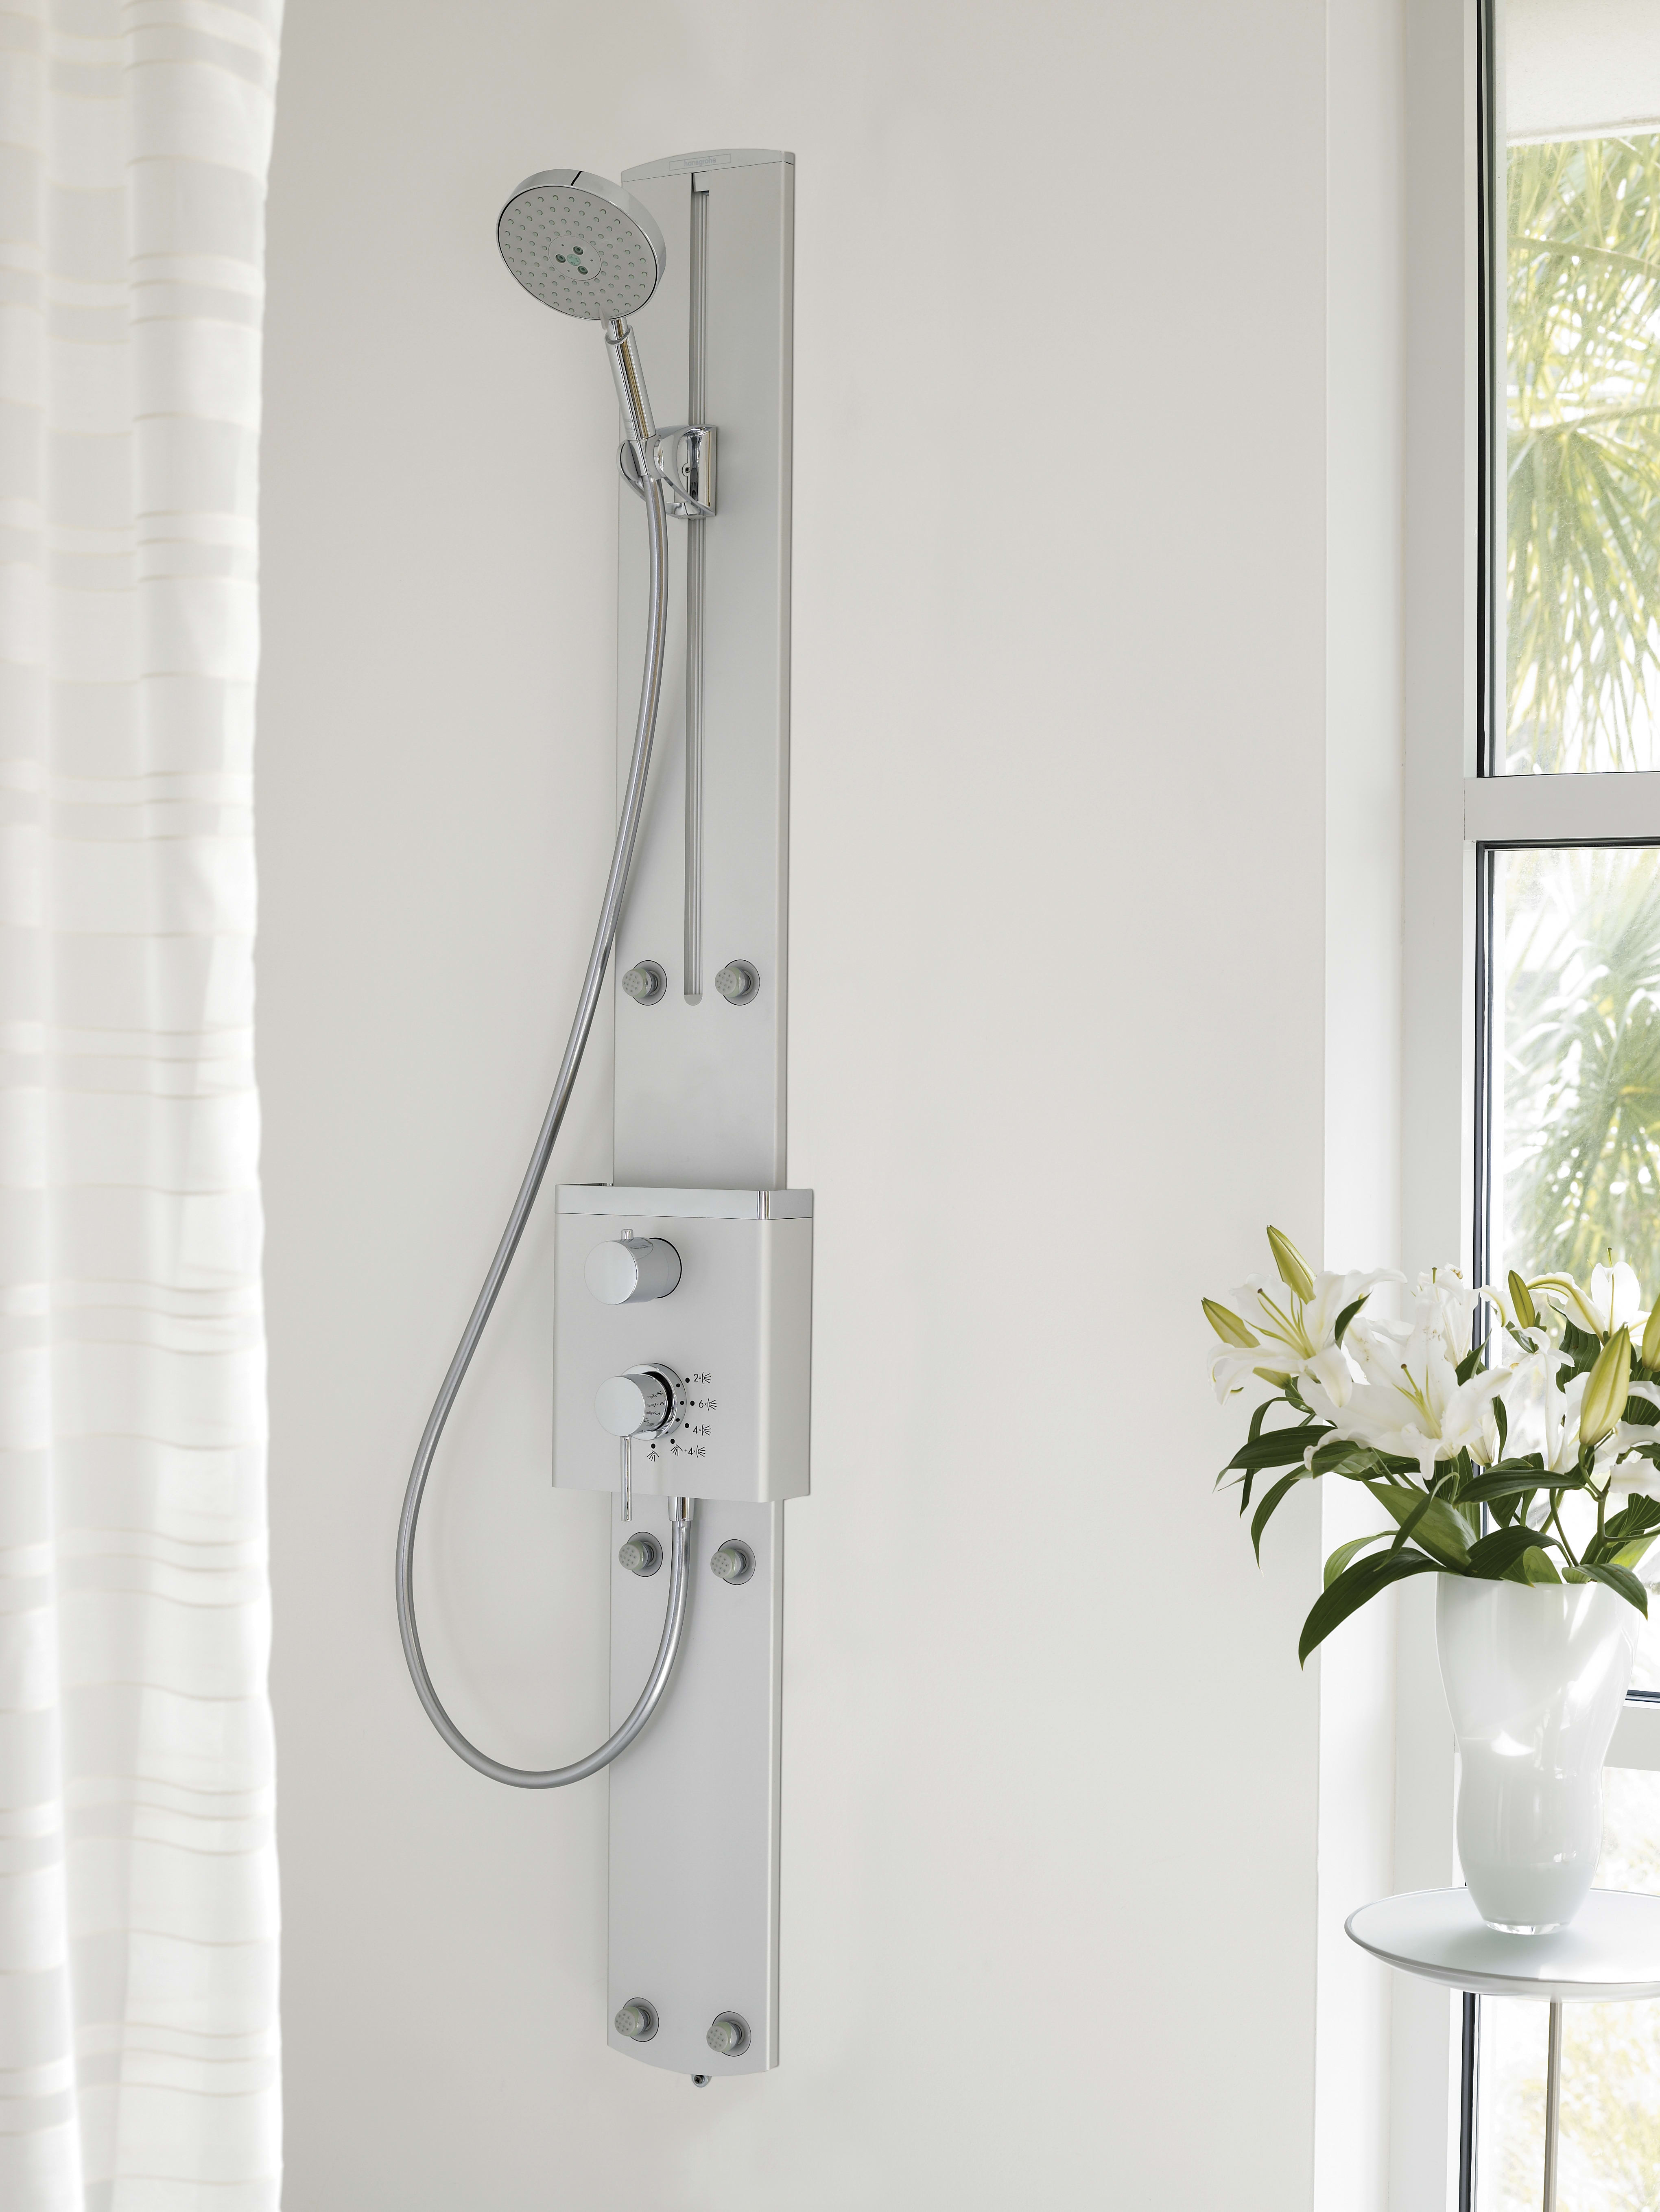 Hansgrohe 27005821 Brushed Nickel ShowerPower Shower Panel with ...